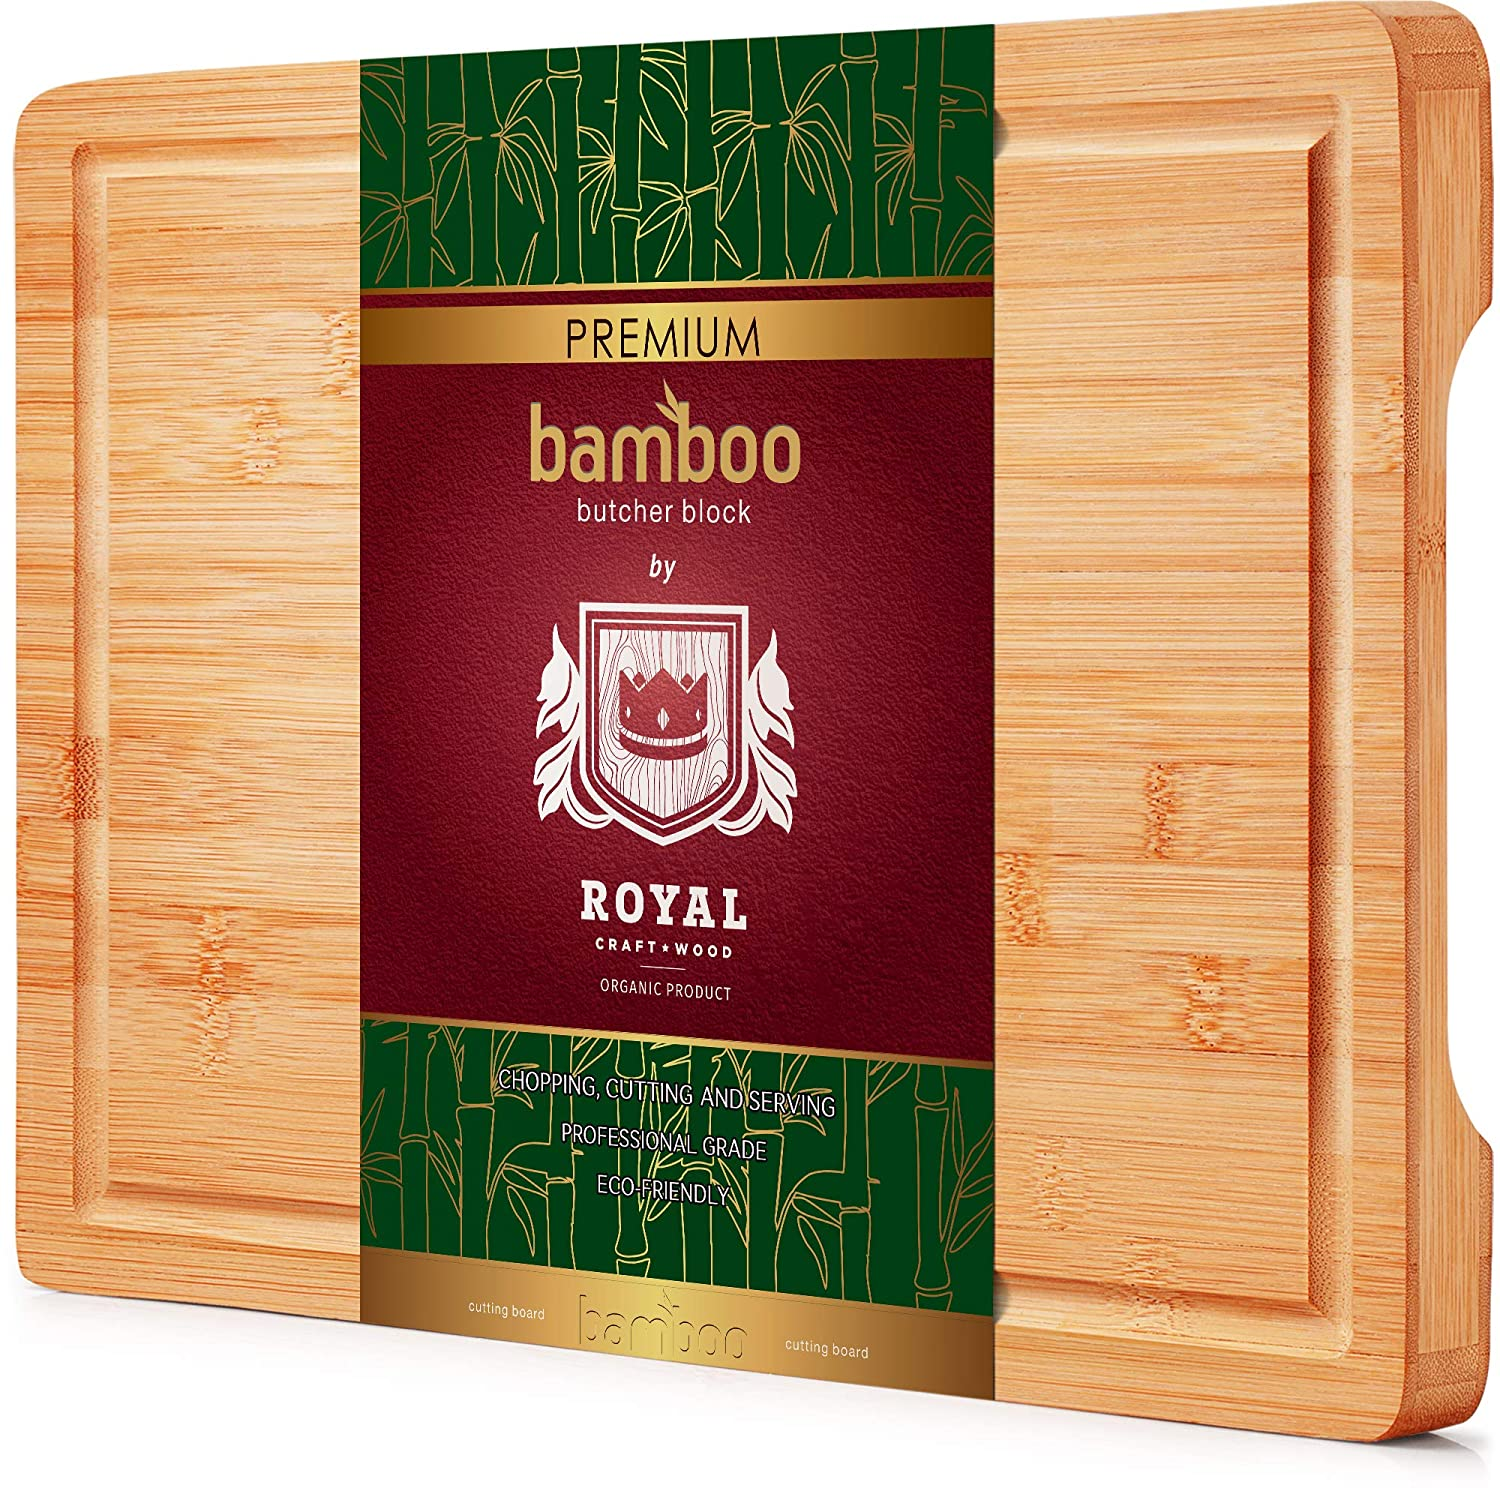 Thick Bamboo Wood Cutting Board/Kitchen Butcher Block - Heavy Duty Chopping Board With Juice Grooves and Handles. Best for Carving Meat, Fish and Chicken | Perfect Gift